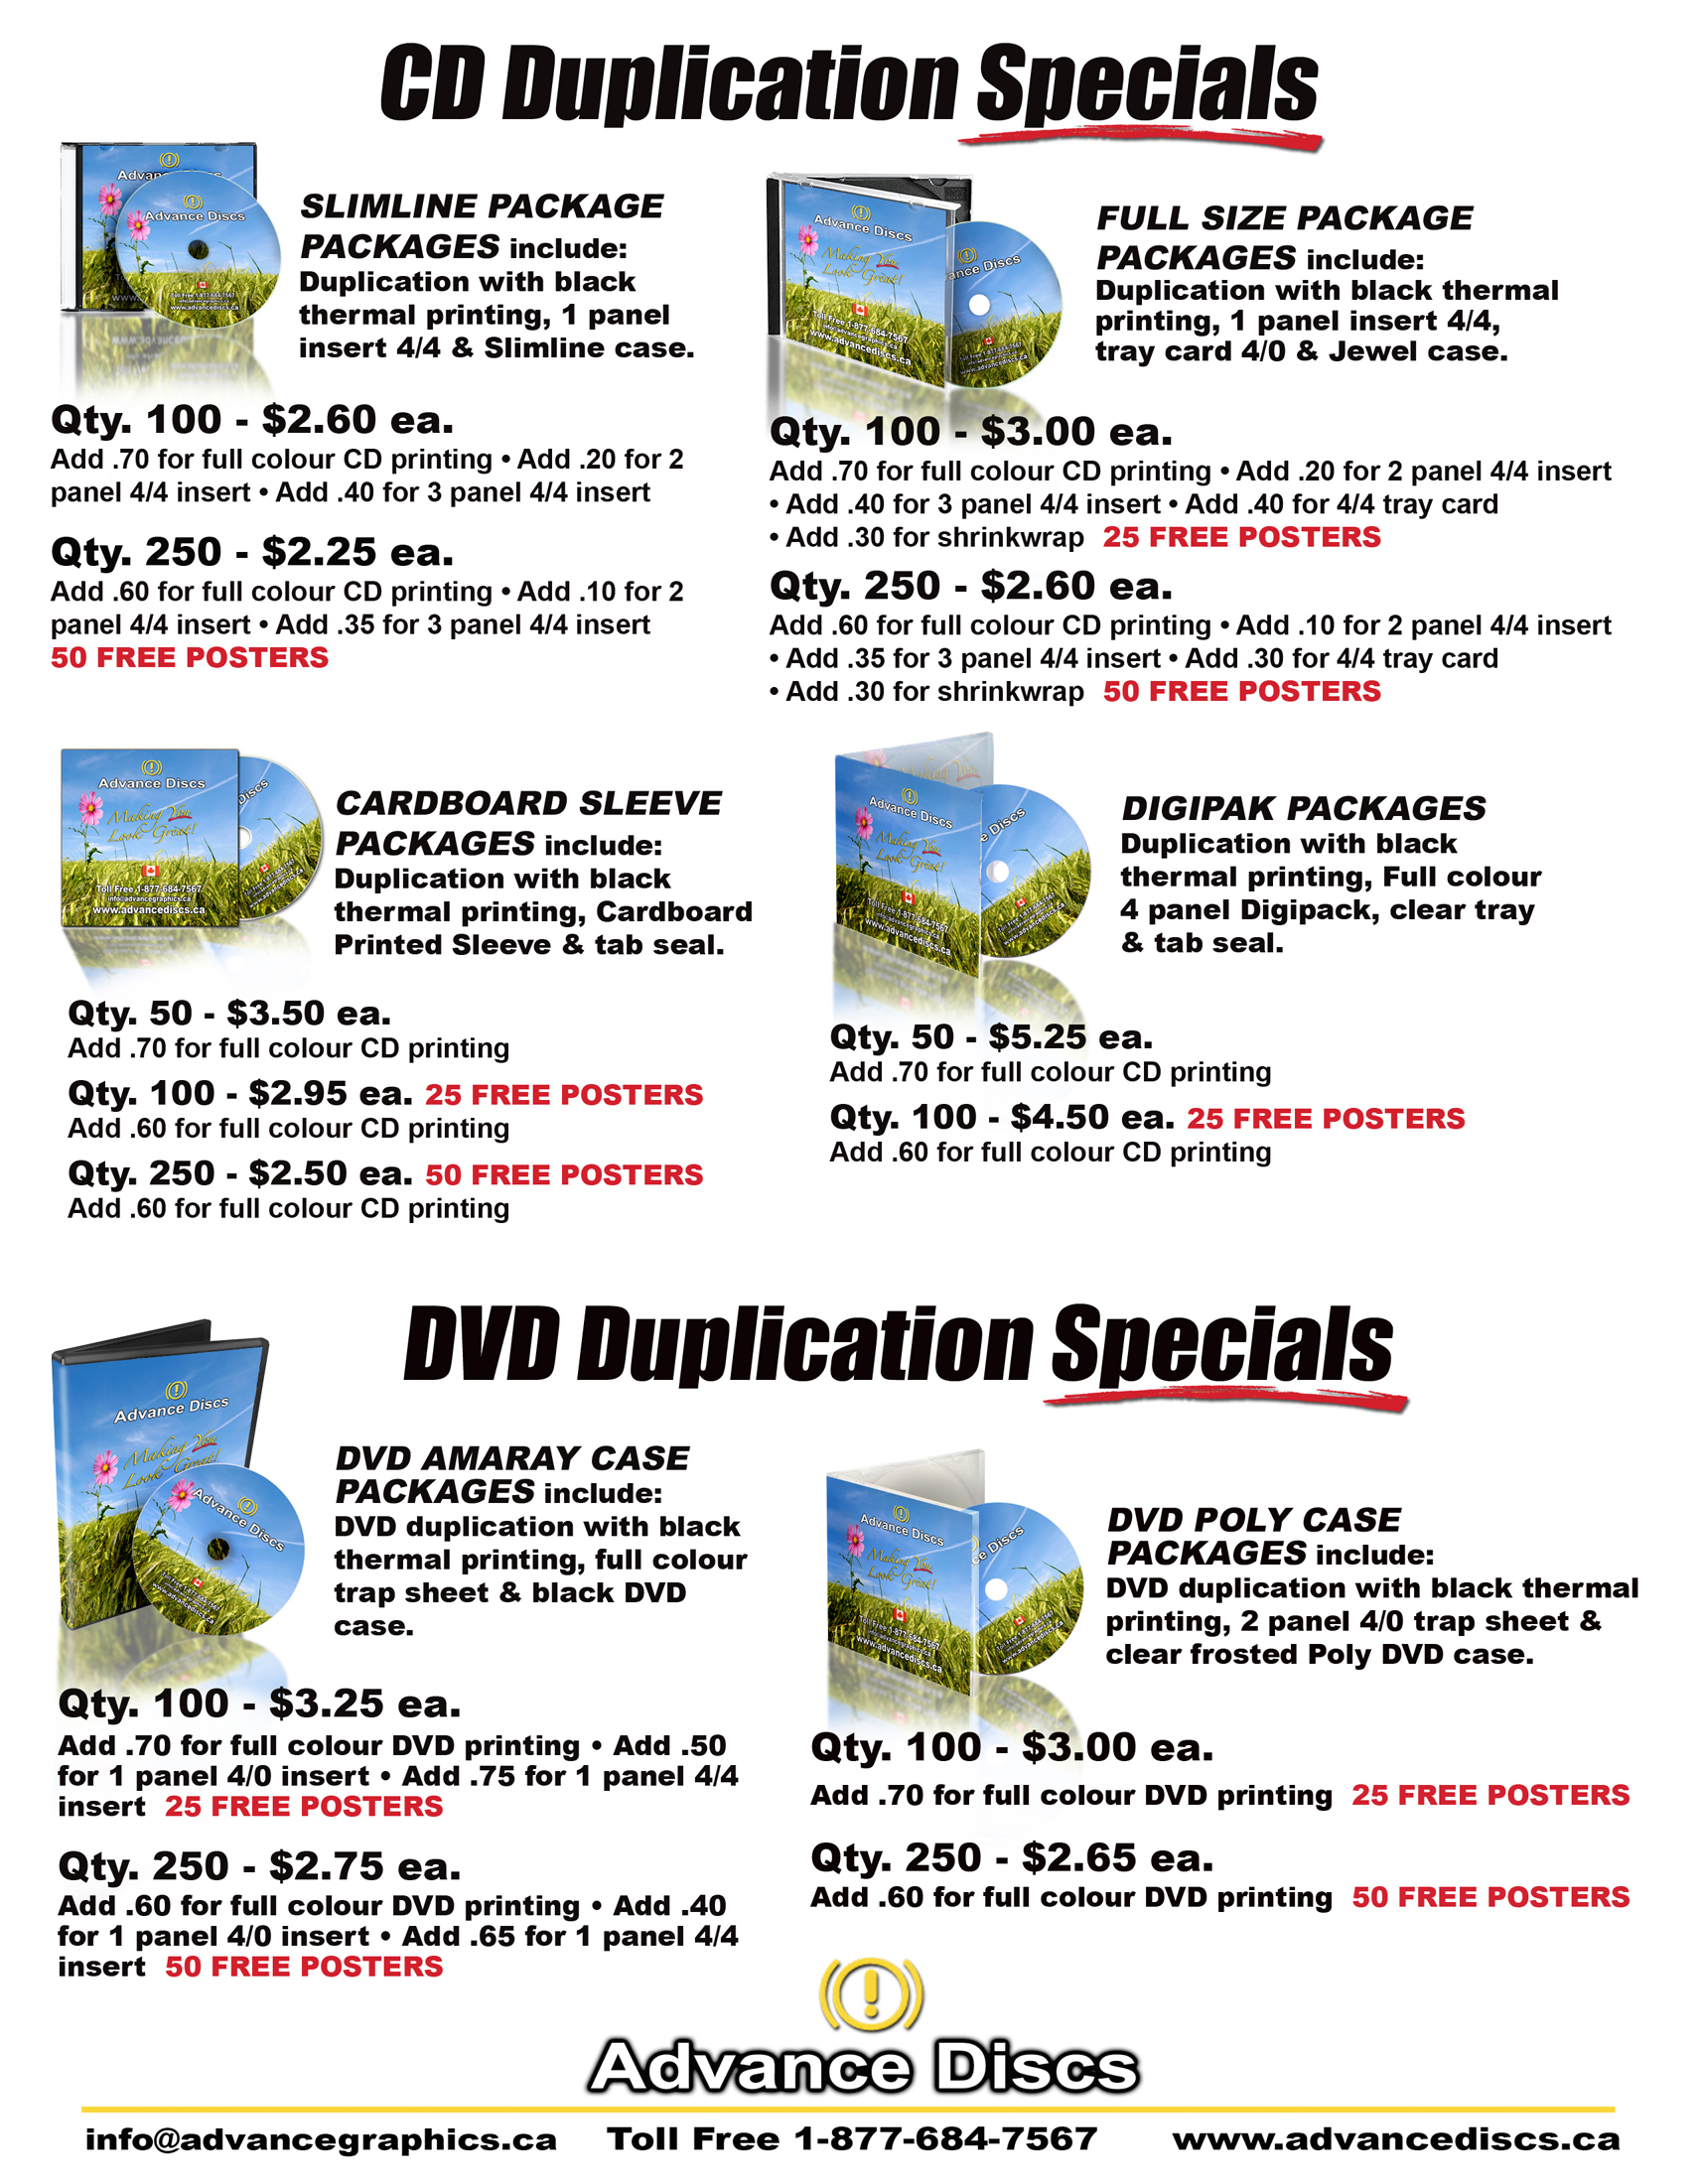 cd duplication prices and dvd duplication prices canada